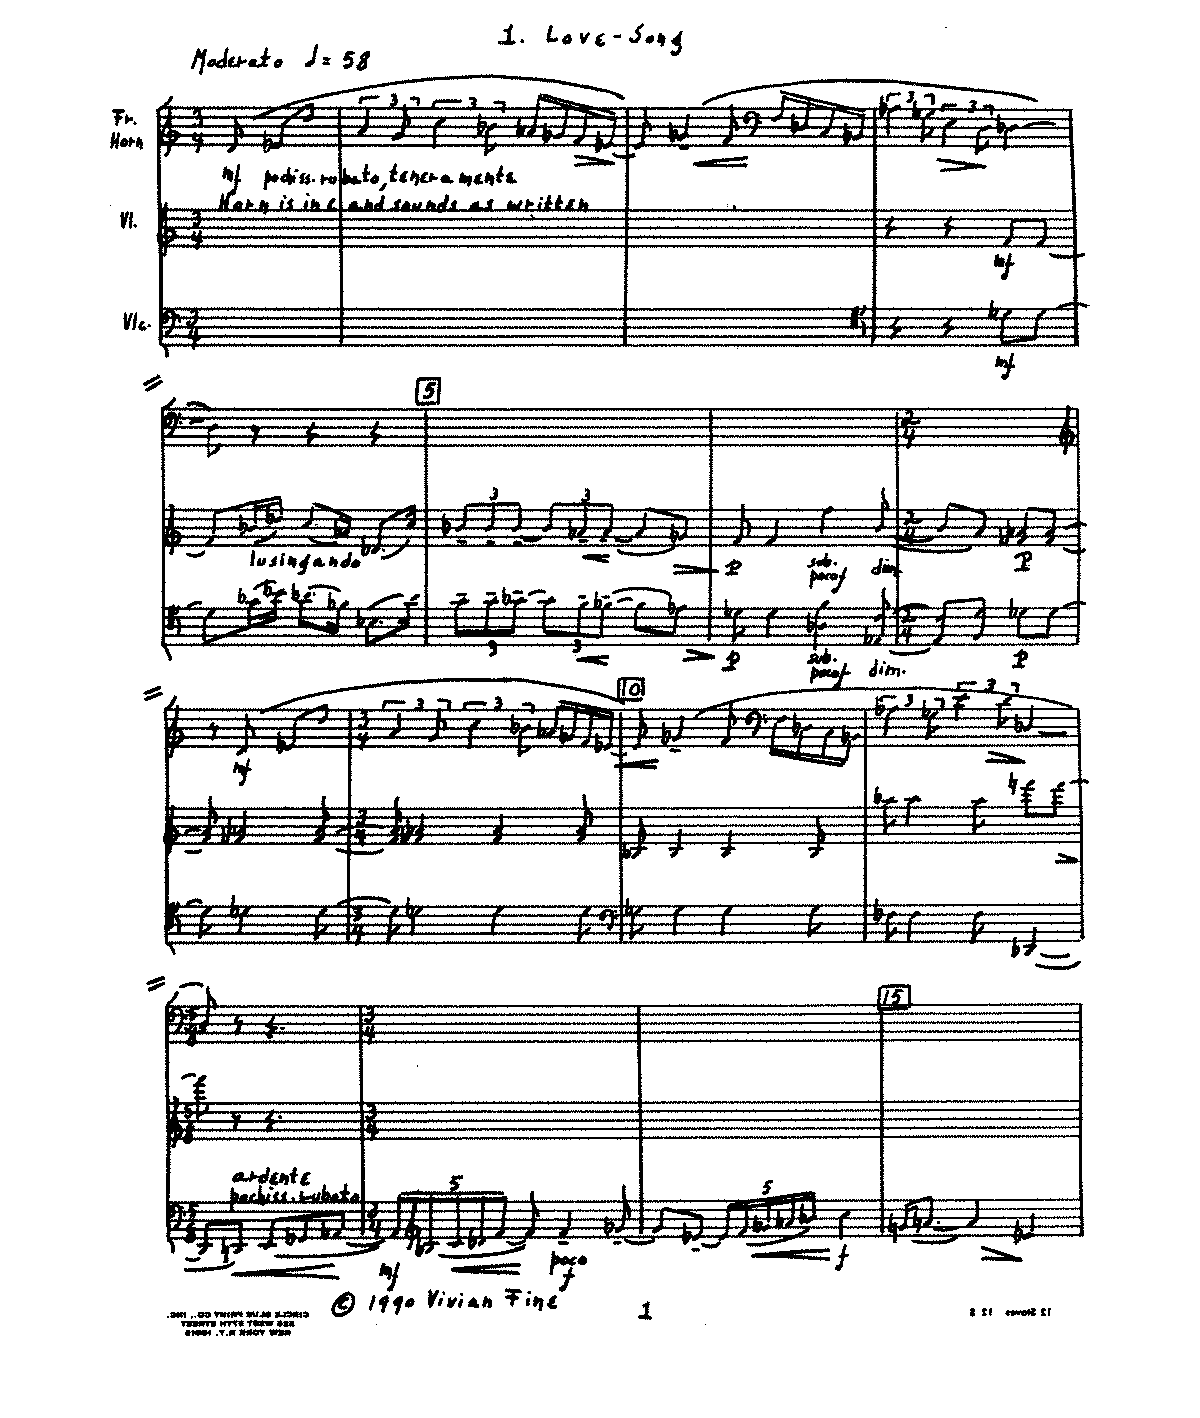 PMLP213527-Songs and Arias score.pdf